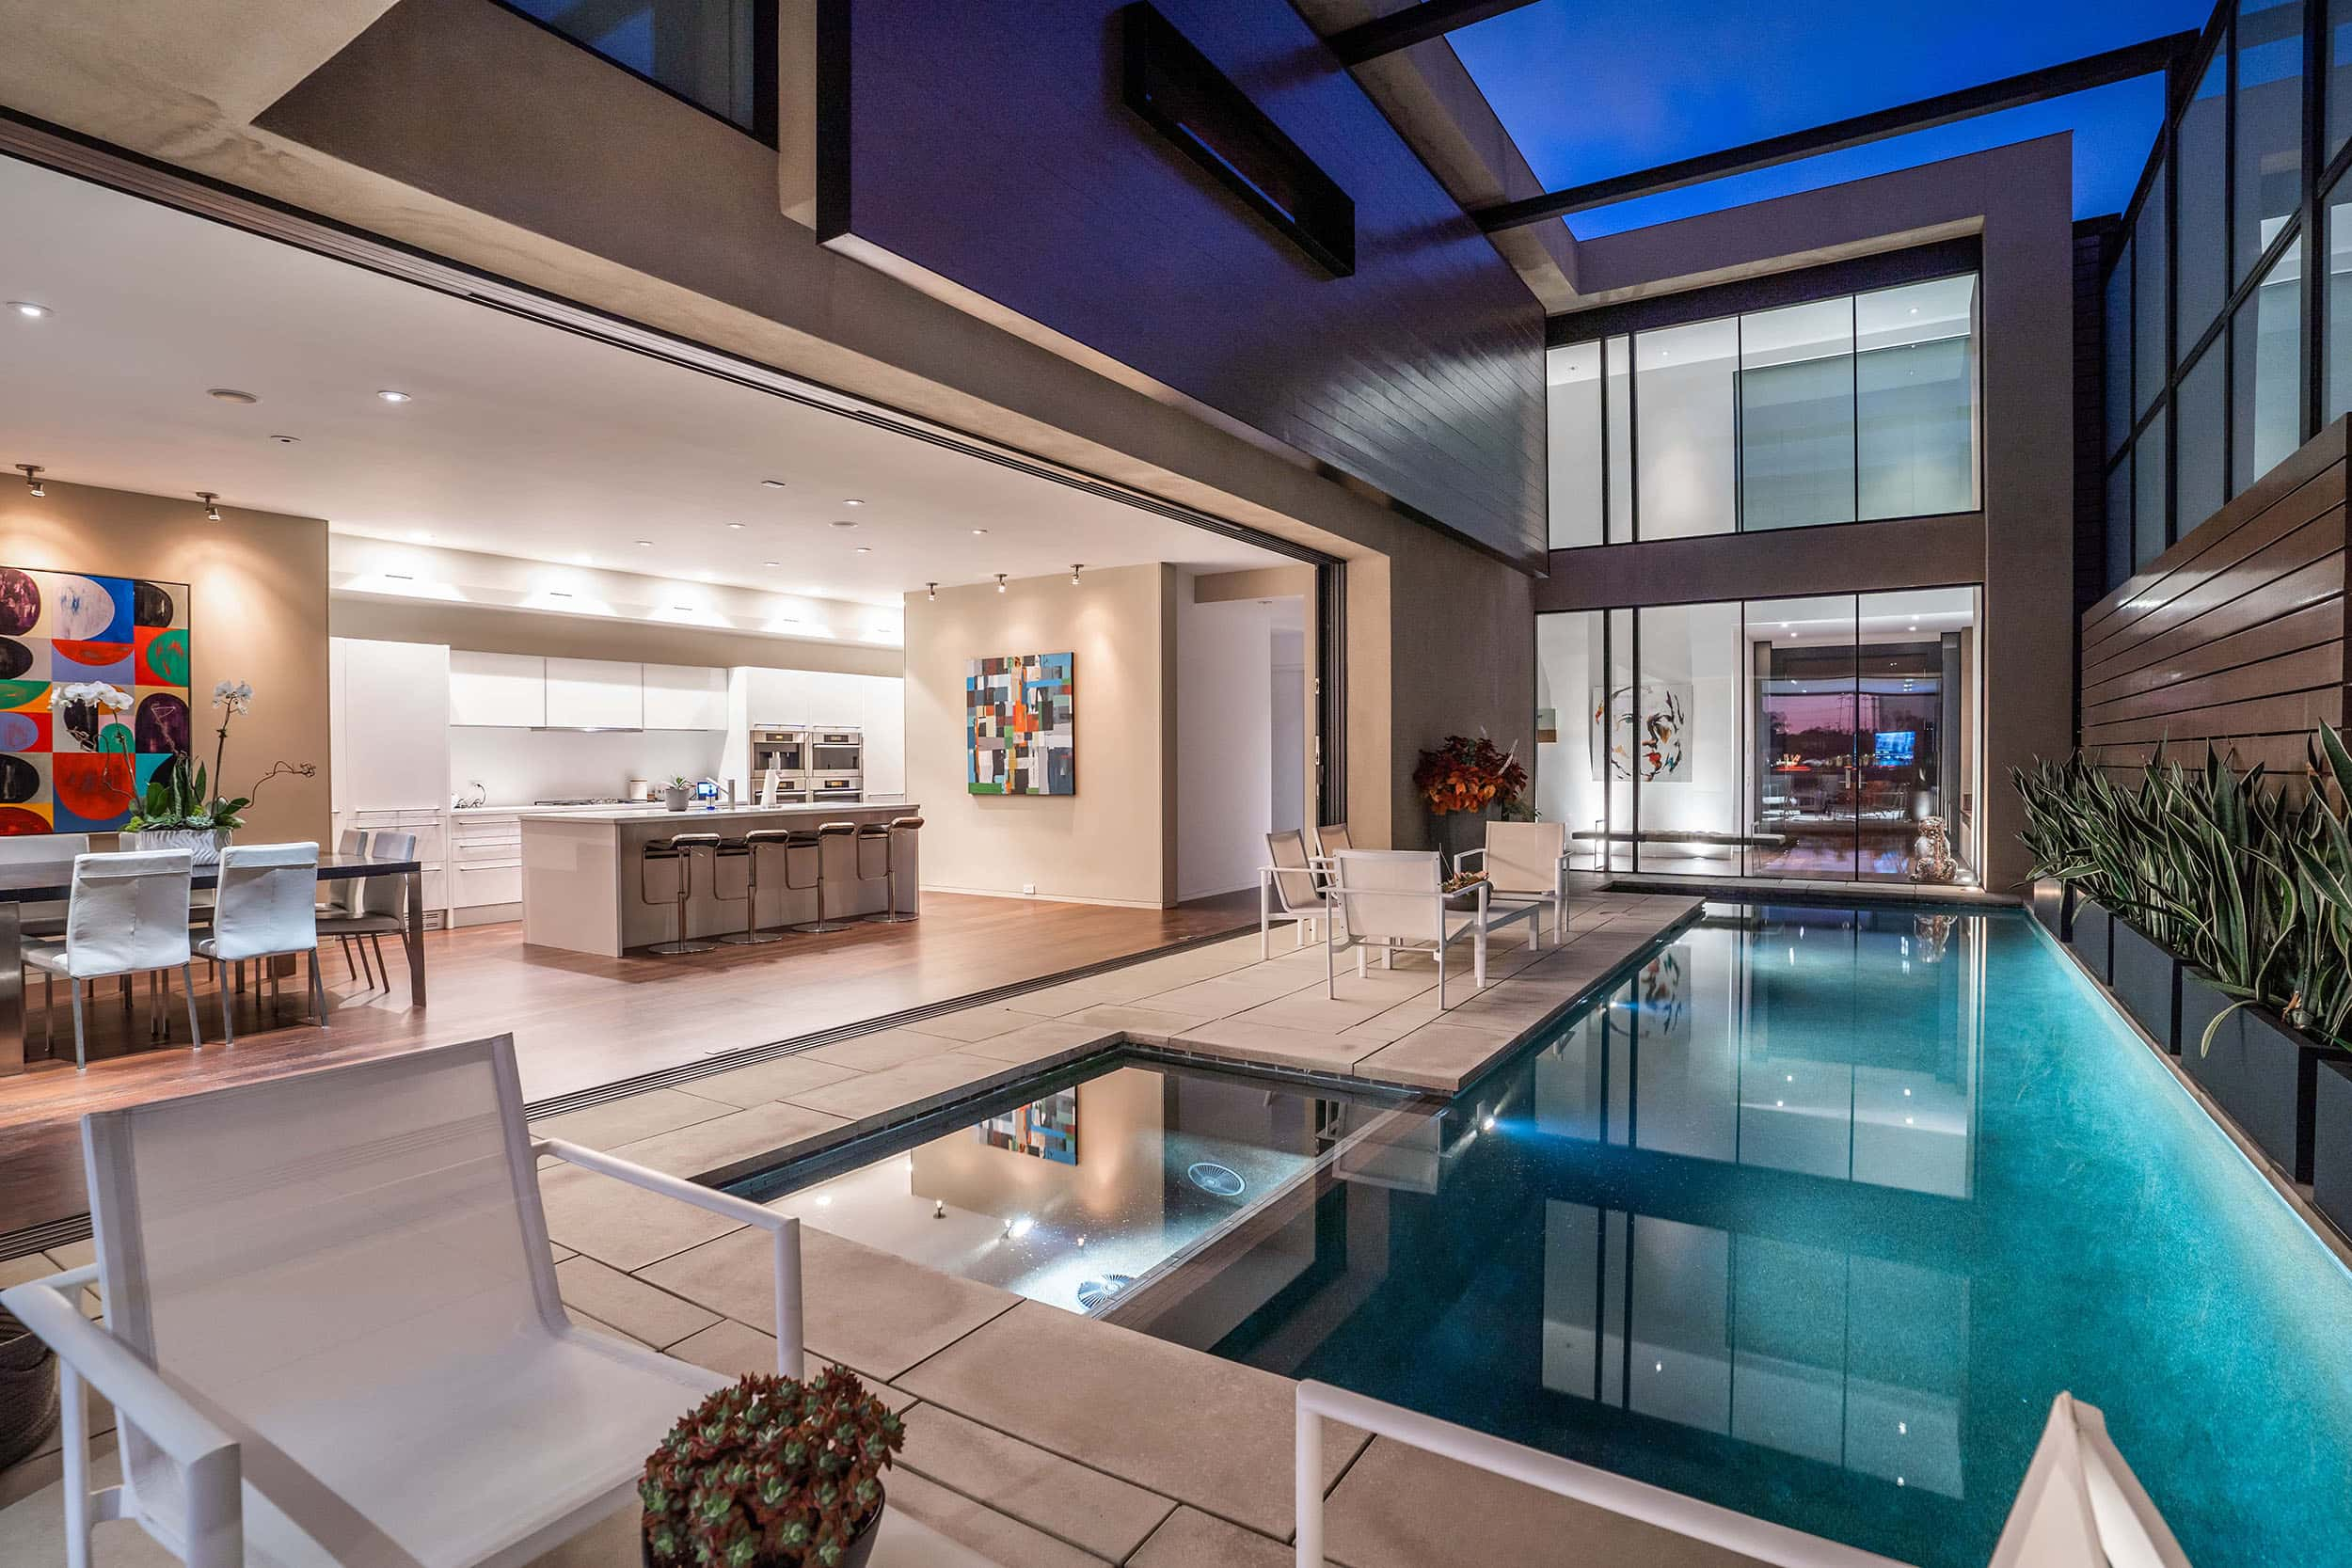 Interior courtyard with pool and open concept living space.